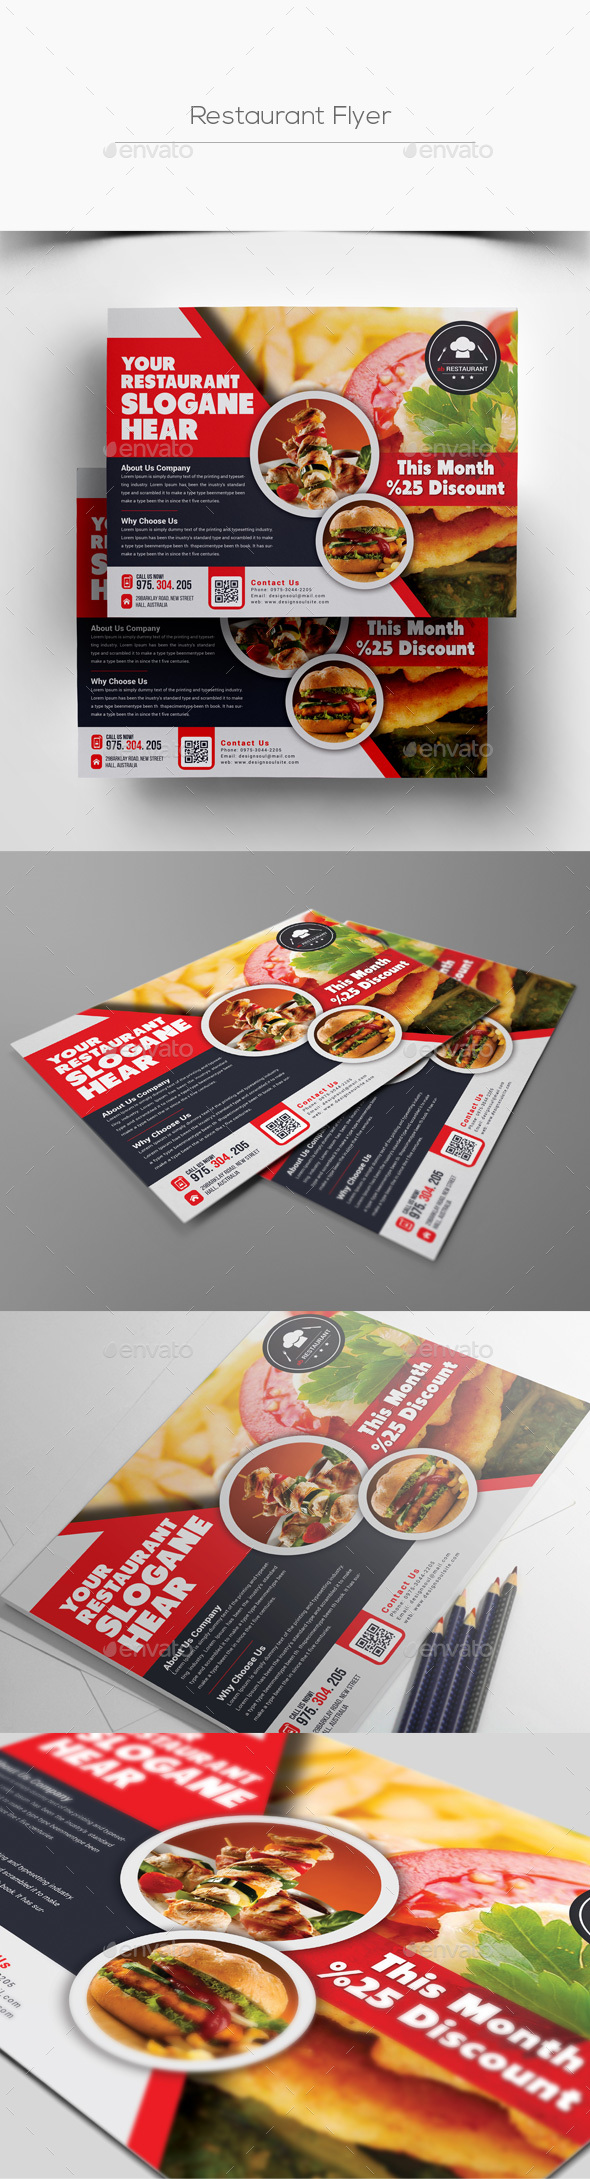 Horizontal Restaurant Flyer